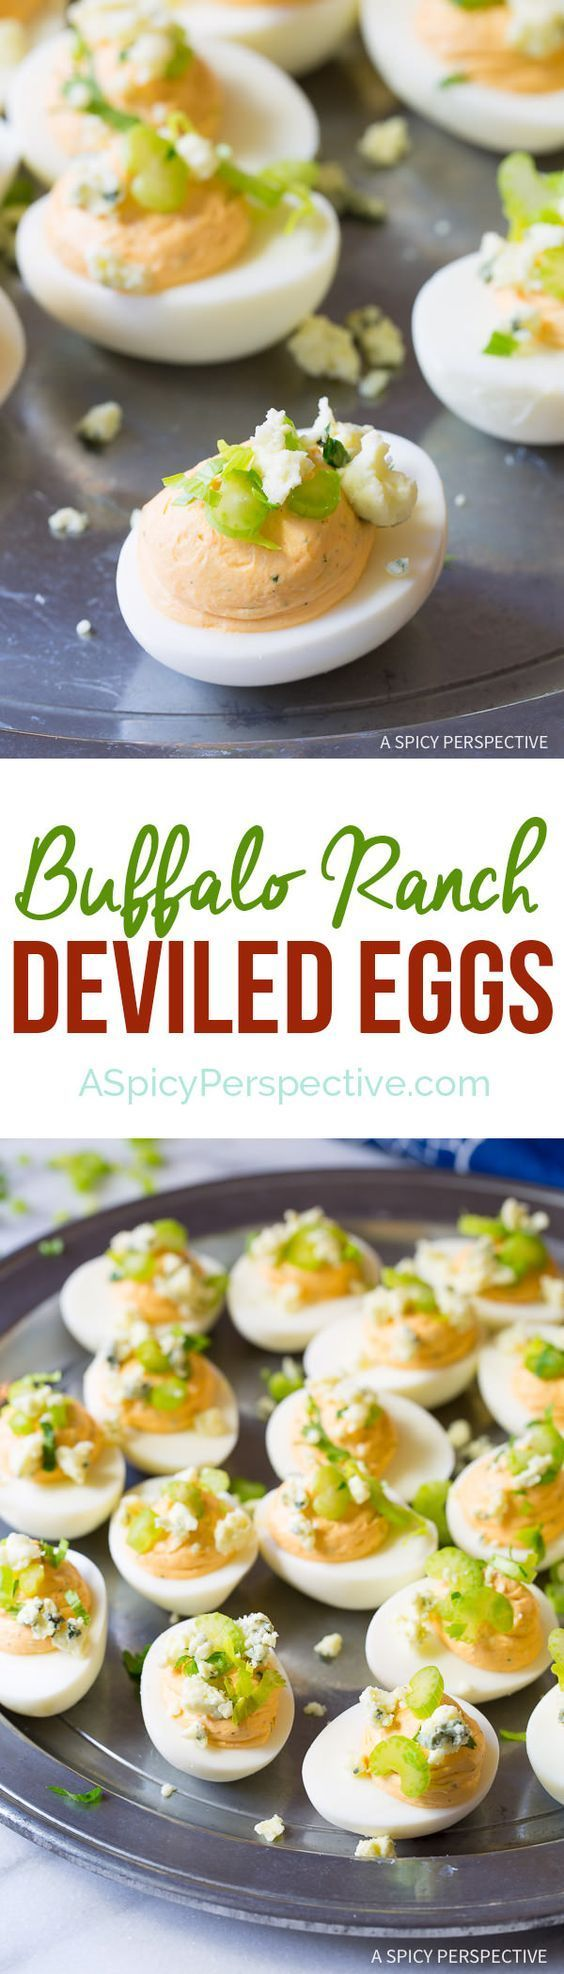 Bold Creamy 6-Ingredient Buffalo Ranch Deviled Eggs Recipe | ASpicyPerspective.com #rancheverything @hvranch